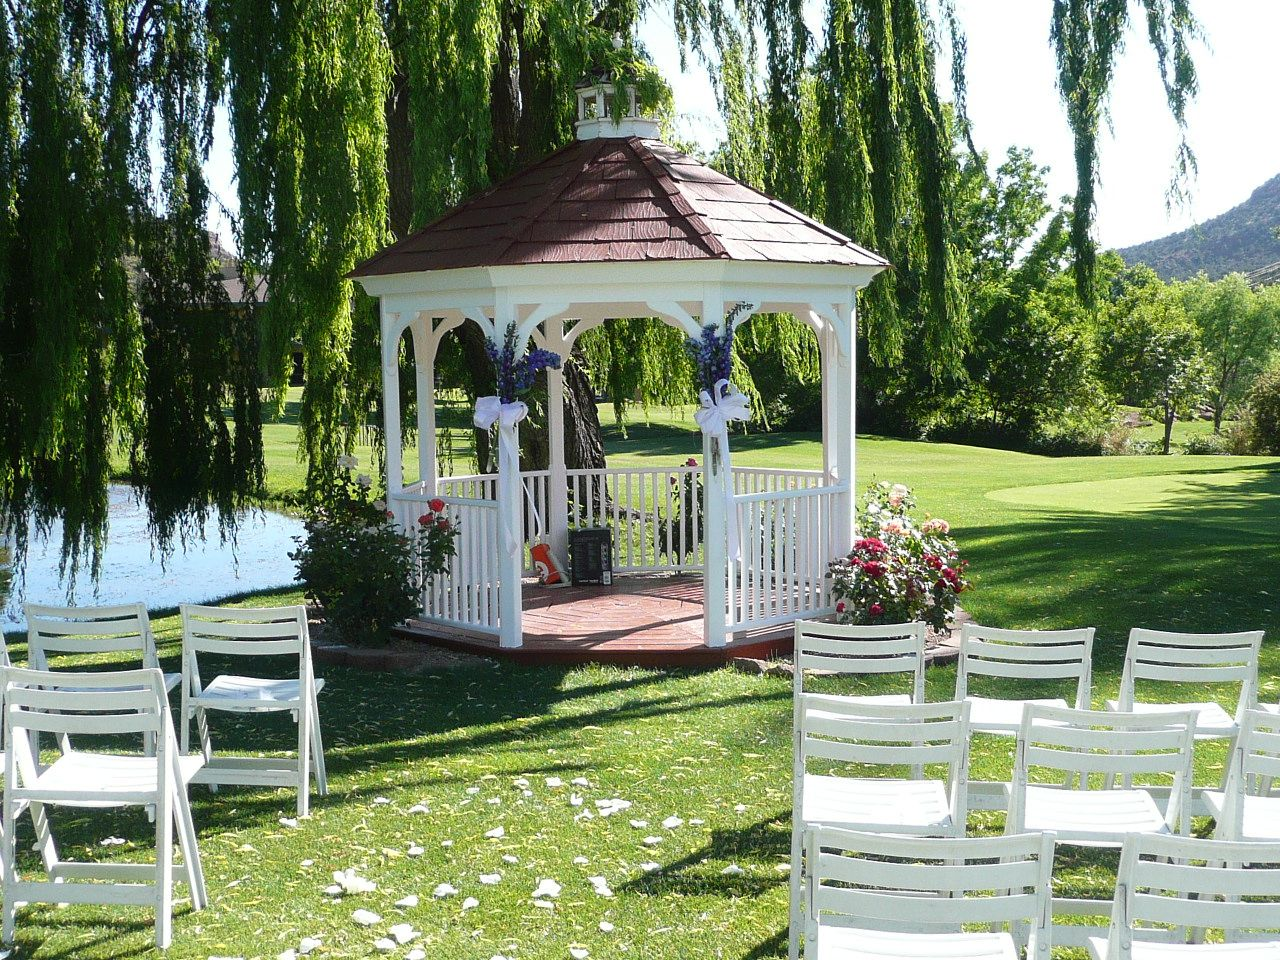 decorating gazebo for wedding - Google Search | Wedding Stuff ...